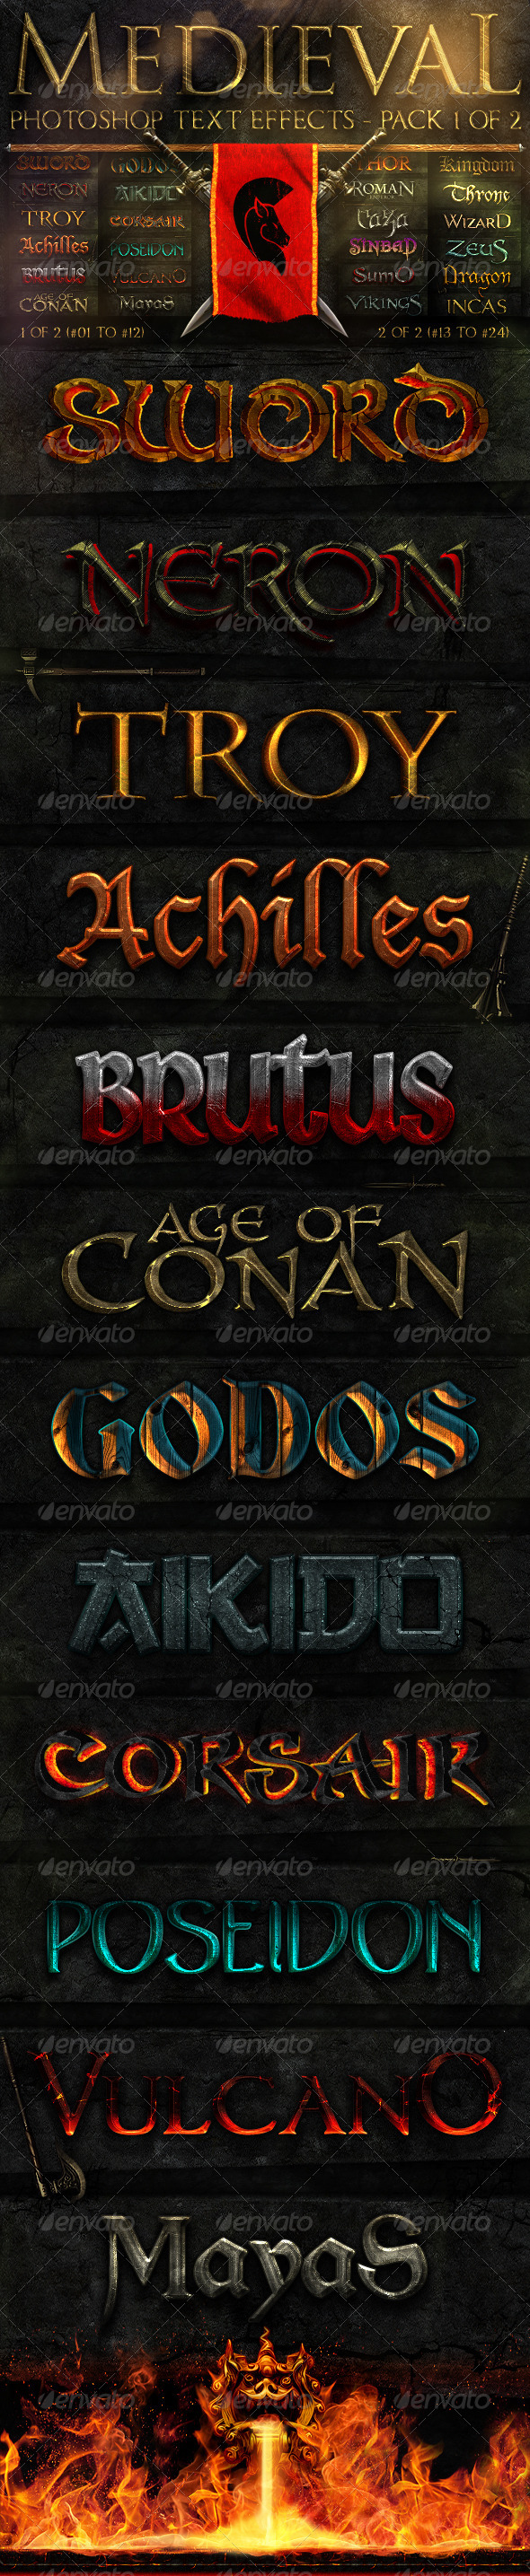 GraphicRiver Medieval Photoshop Text Effects 1 of 2 289650